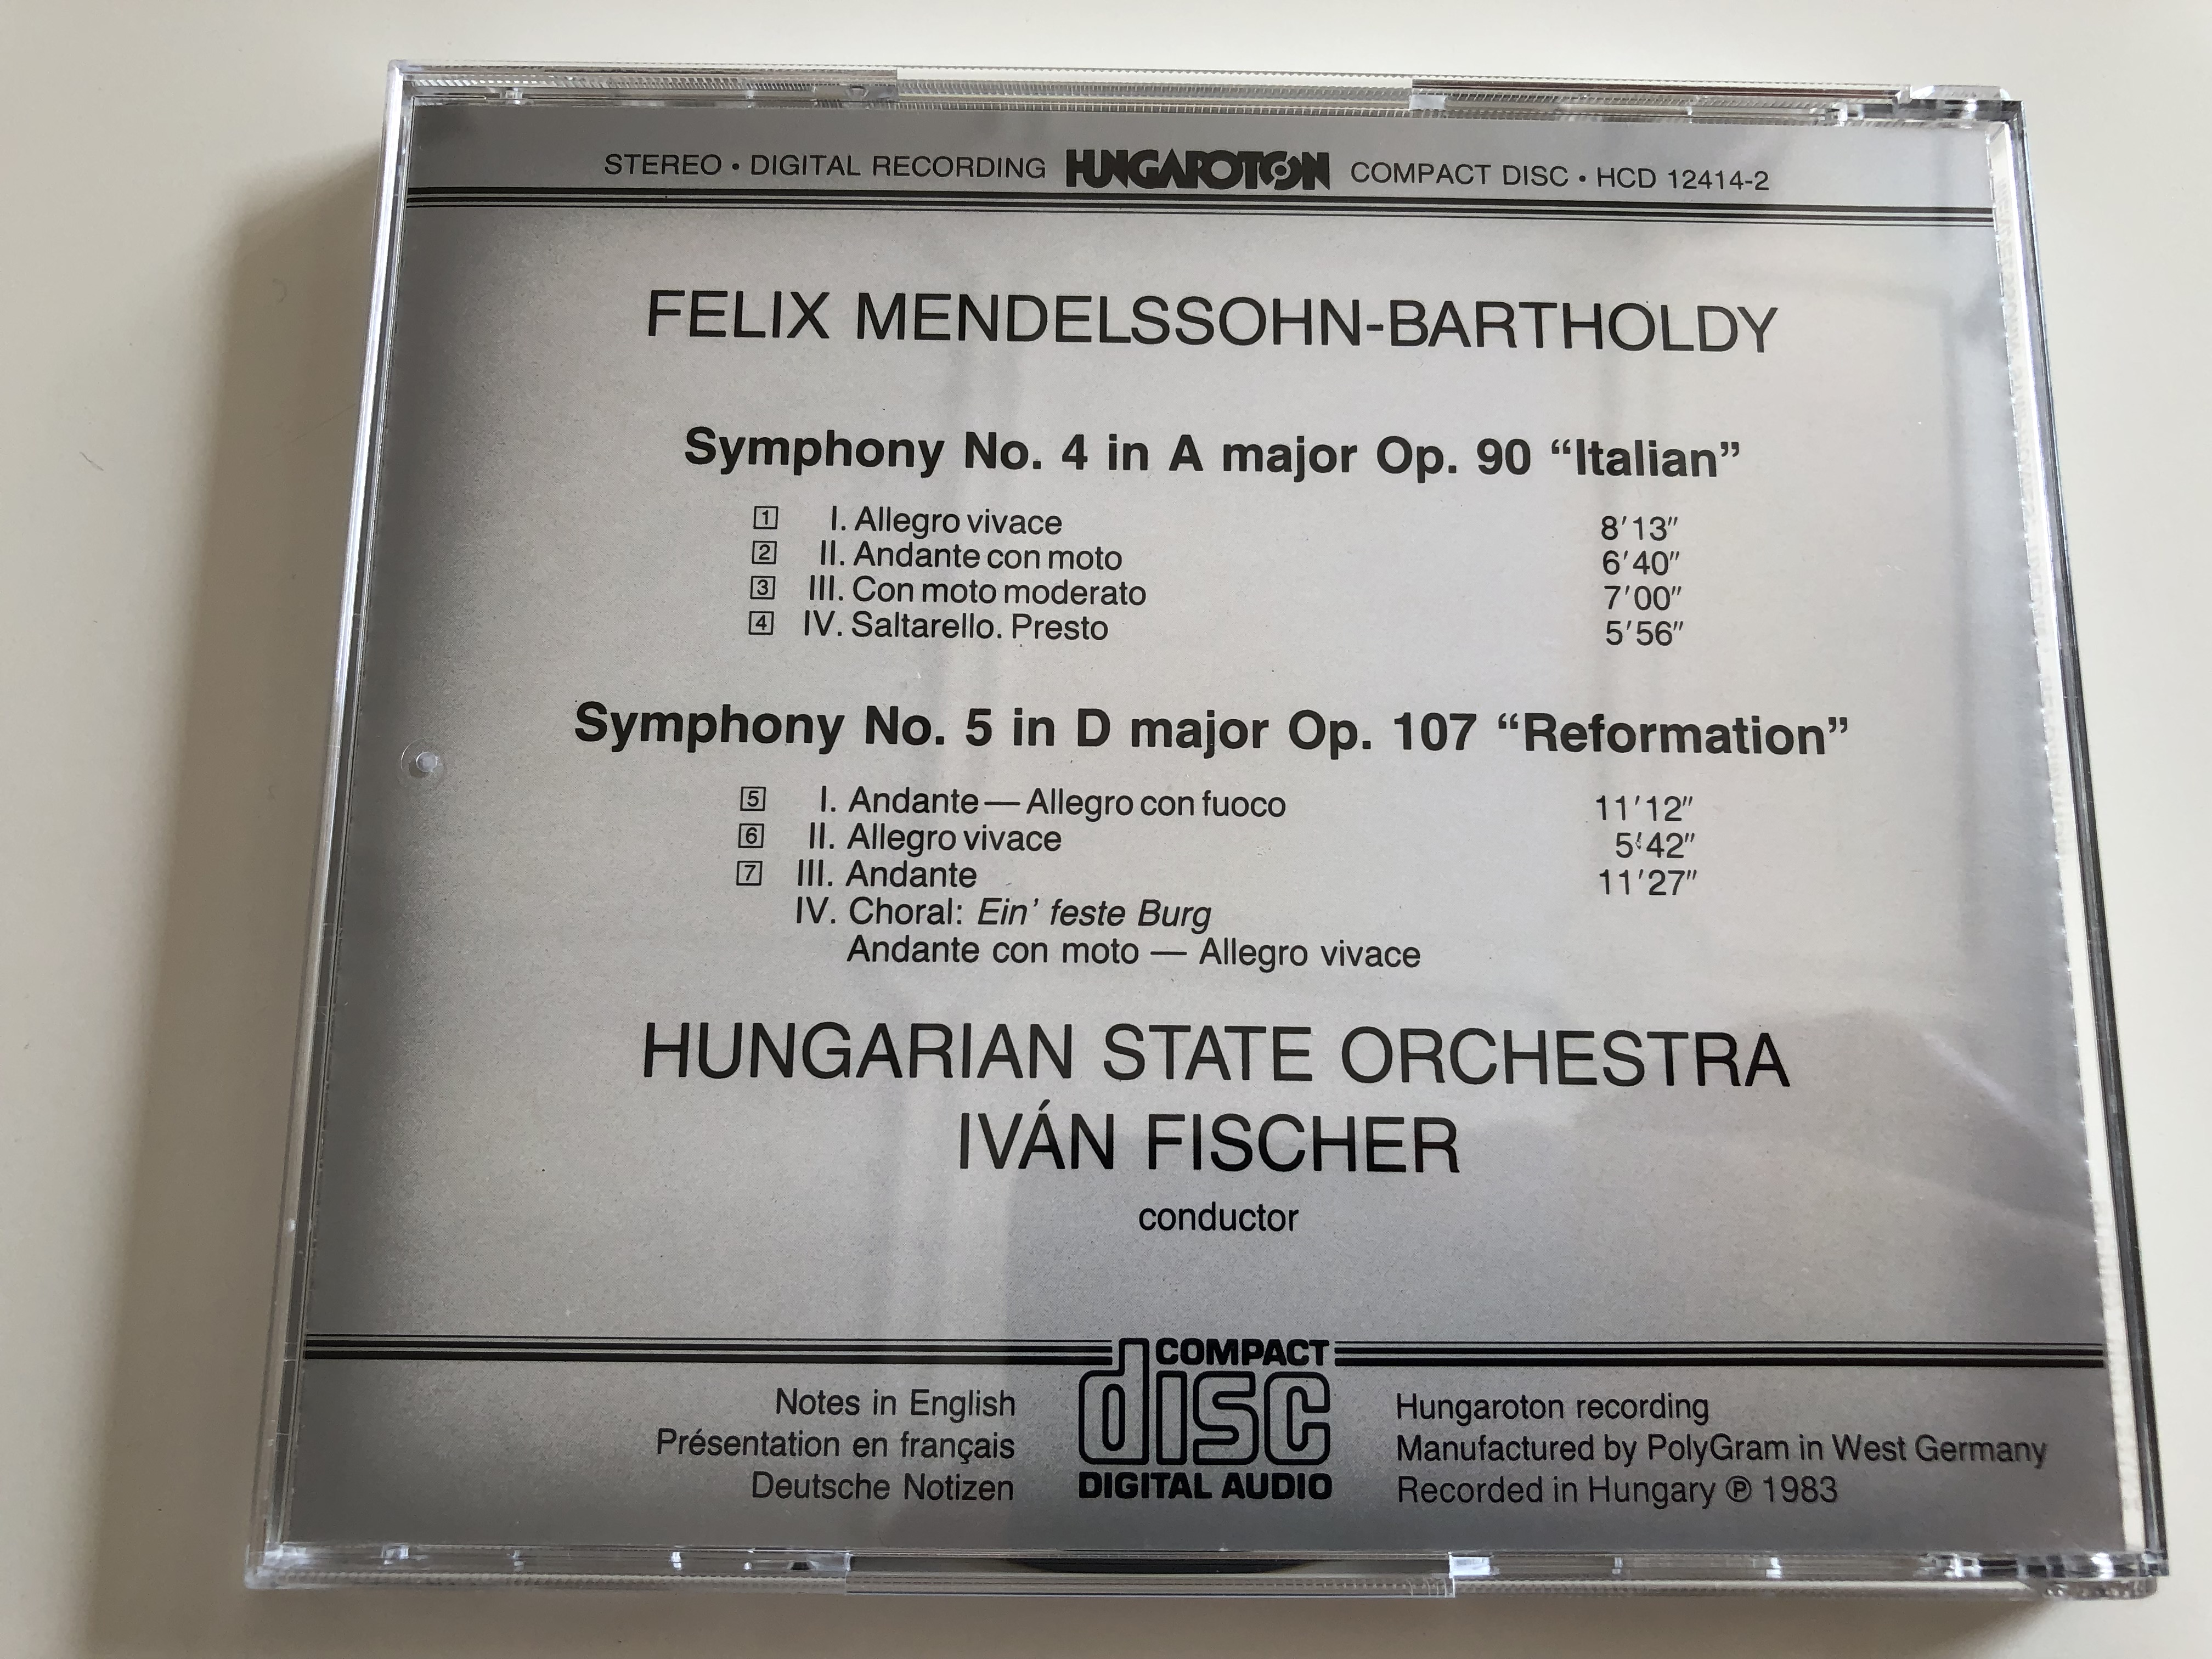 mendelssohn-symphony-no.-4-italian-symphony-no.-5-reformation-hungarian-state-orchestra-conducted-by-iv-n-fischer-hungaroton-audio-cd-1983-hcd-12414-2-7-.jpg